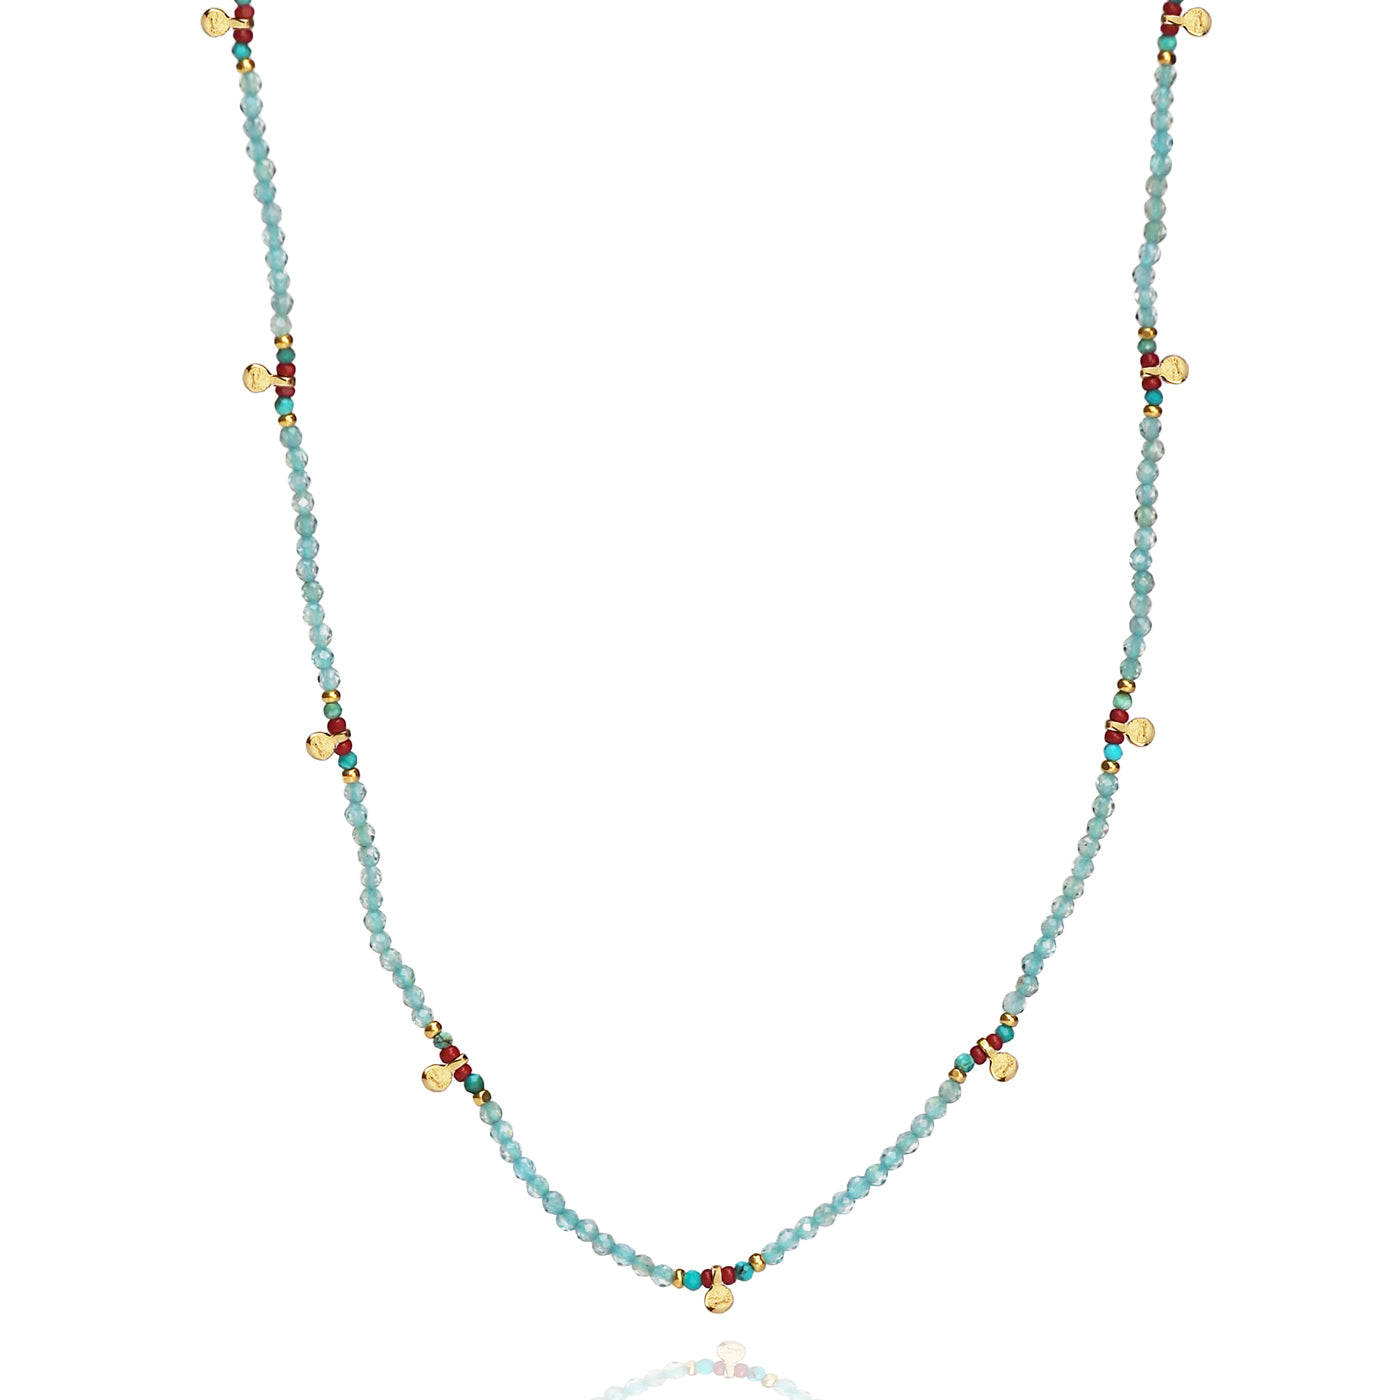 Handmade Beaded Necklace with Disc Dangles